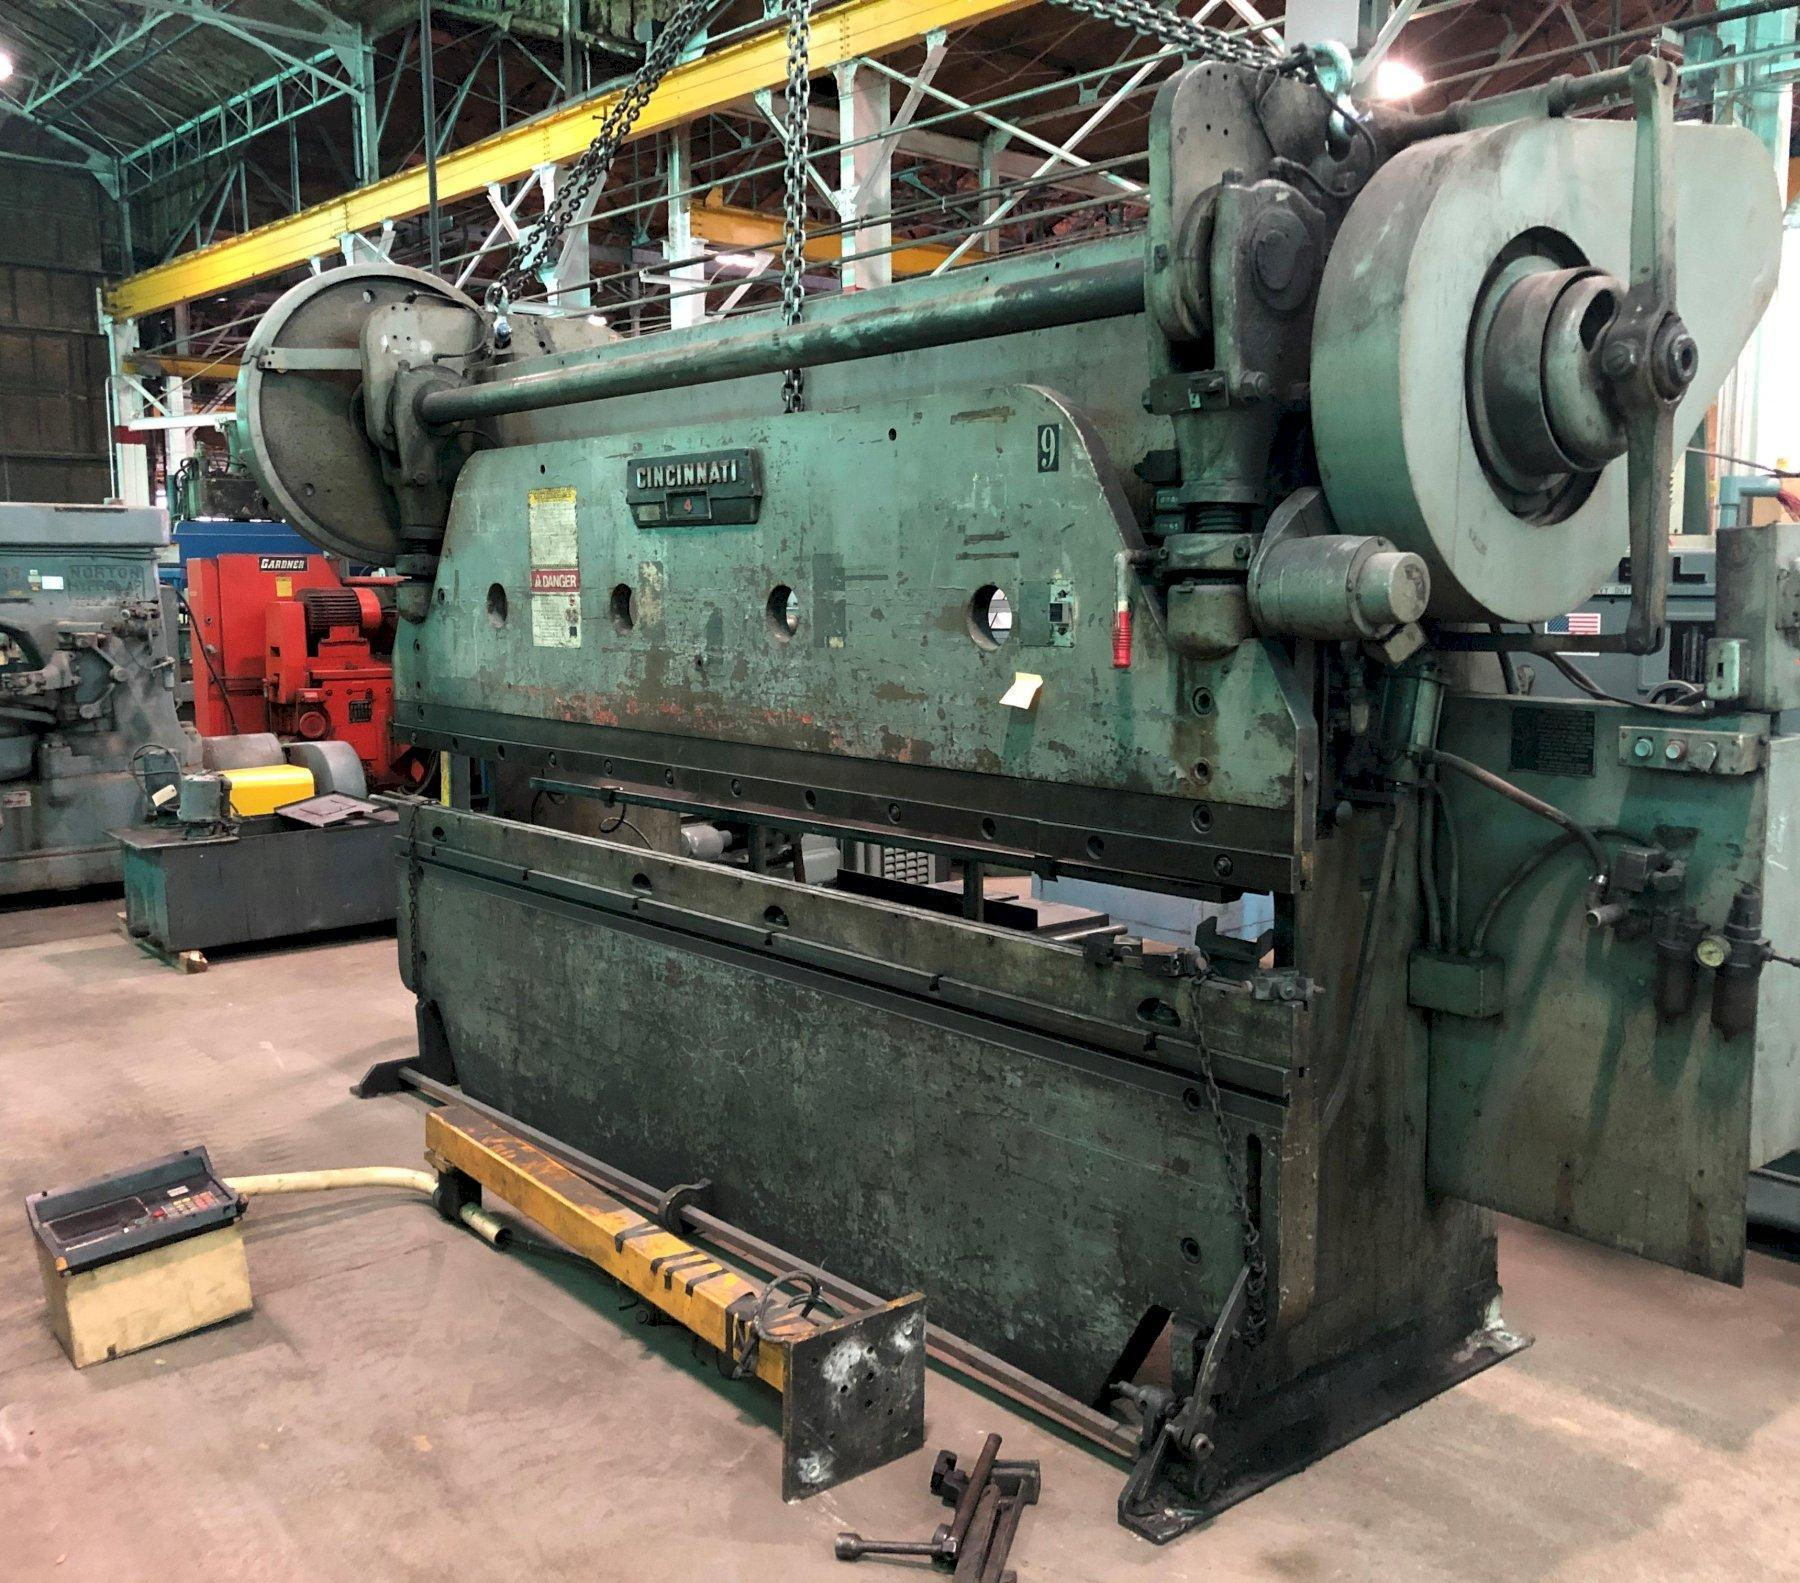 100 Ton Cincinnati Press Brake No. 4, Mechanical, 12′ O.A., 10'6″ B.H., 3″ Stroke, Hurco 5C Back Gauge, Low Price